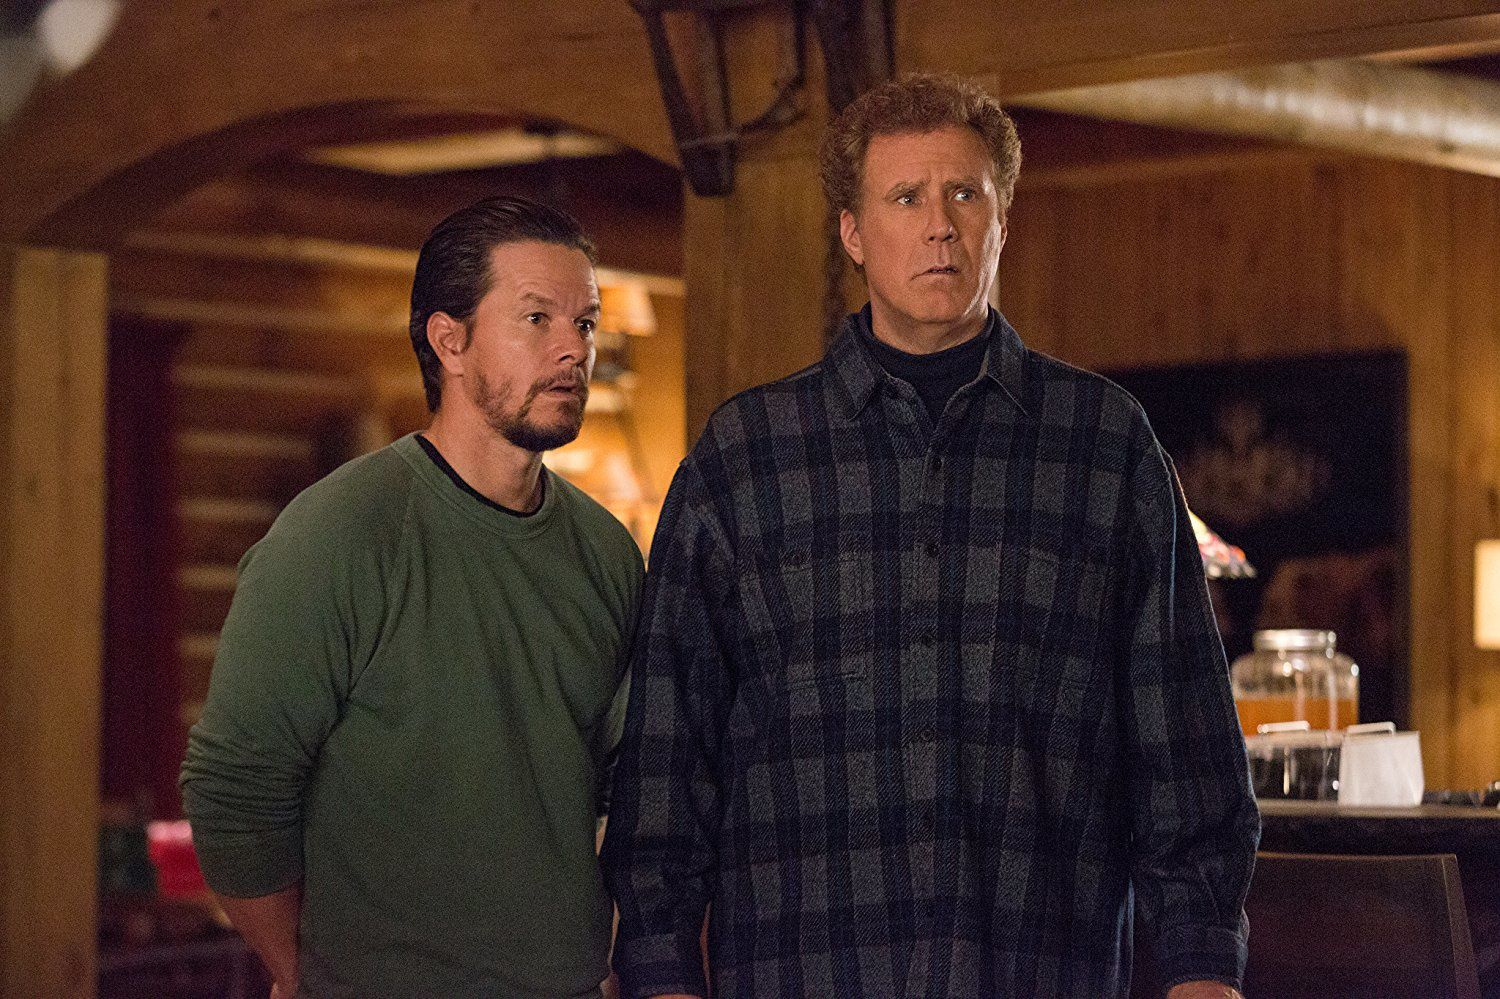 Very Bad Dads 2 avec Will Ferrell, Mark Wahlberg, Mel Gibson (BANDE-ANNONCE) En DVD le 3 avril 2018